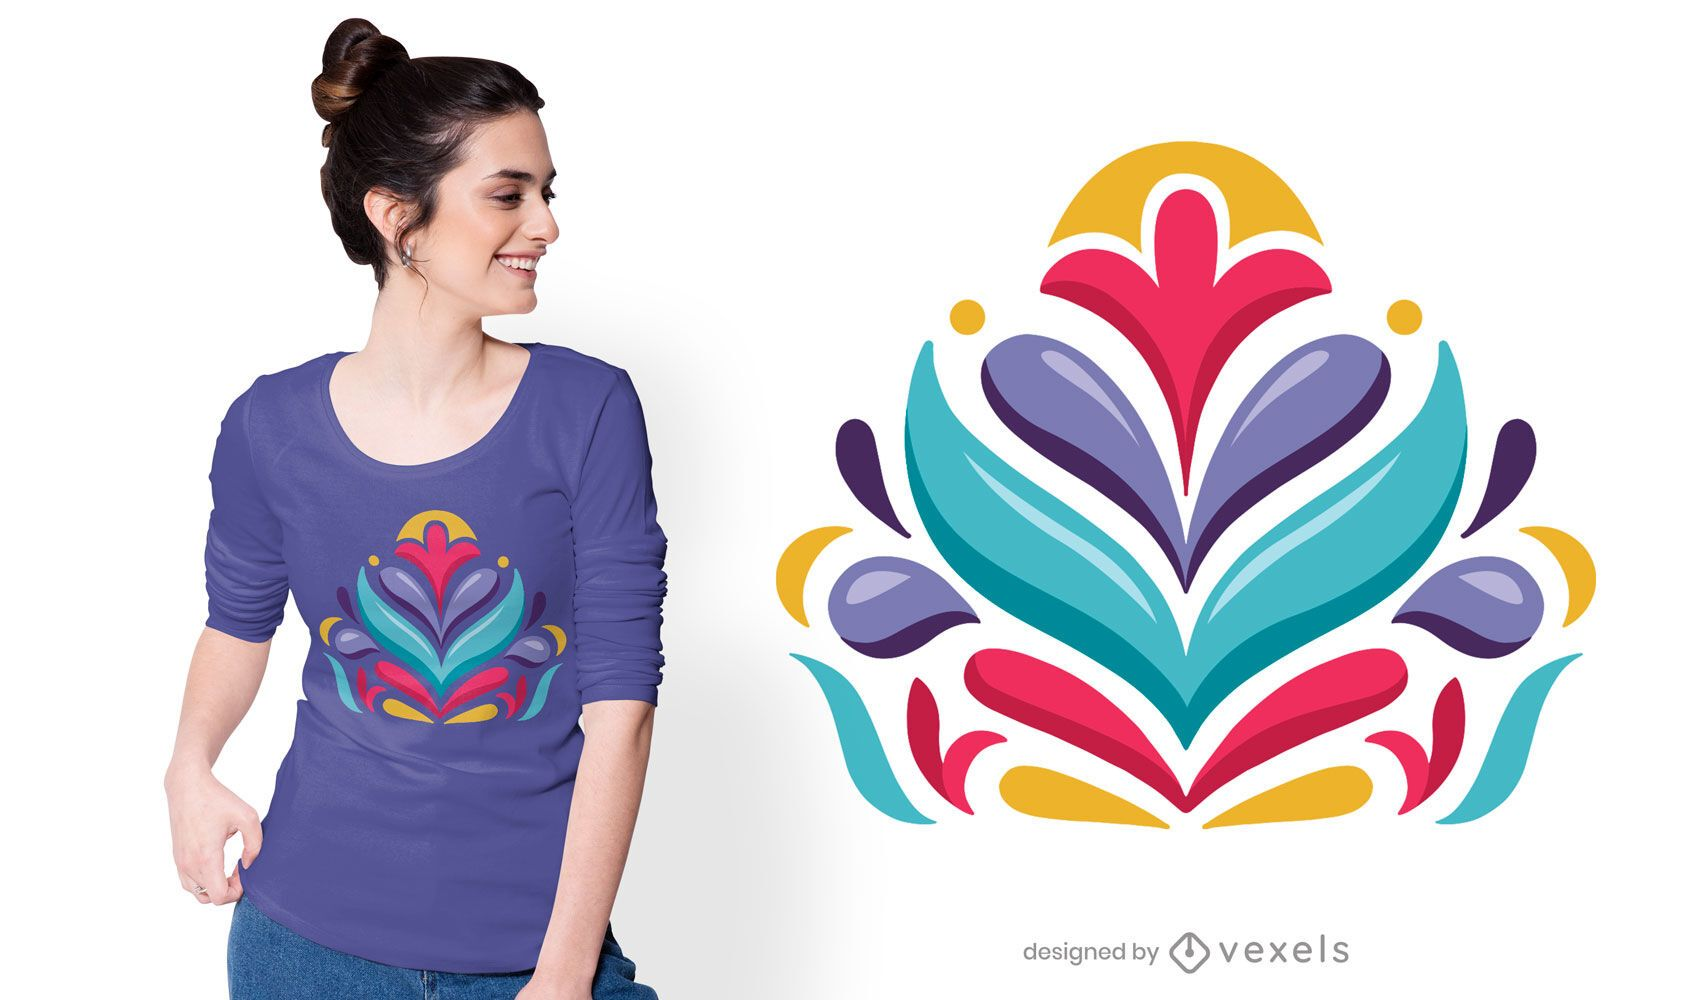 Glossy otomi composition t-shirt design